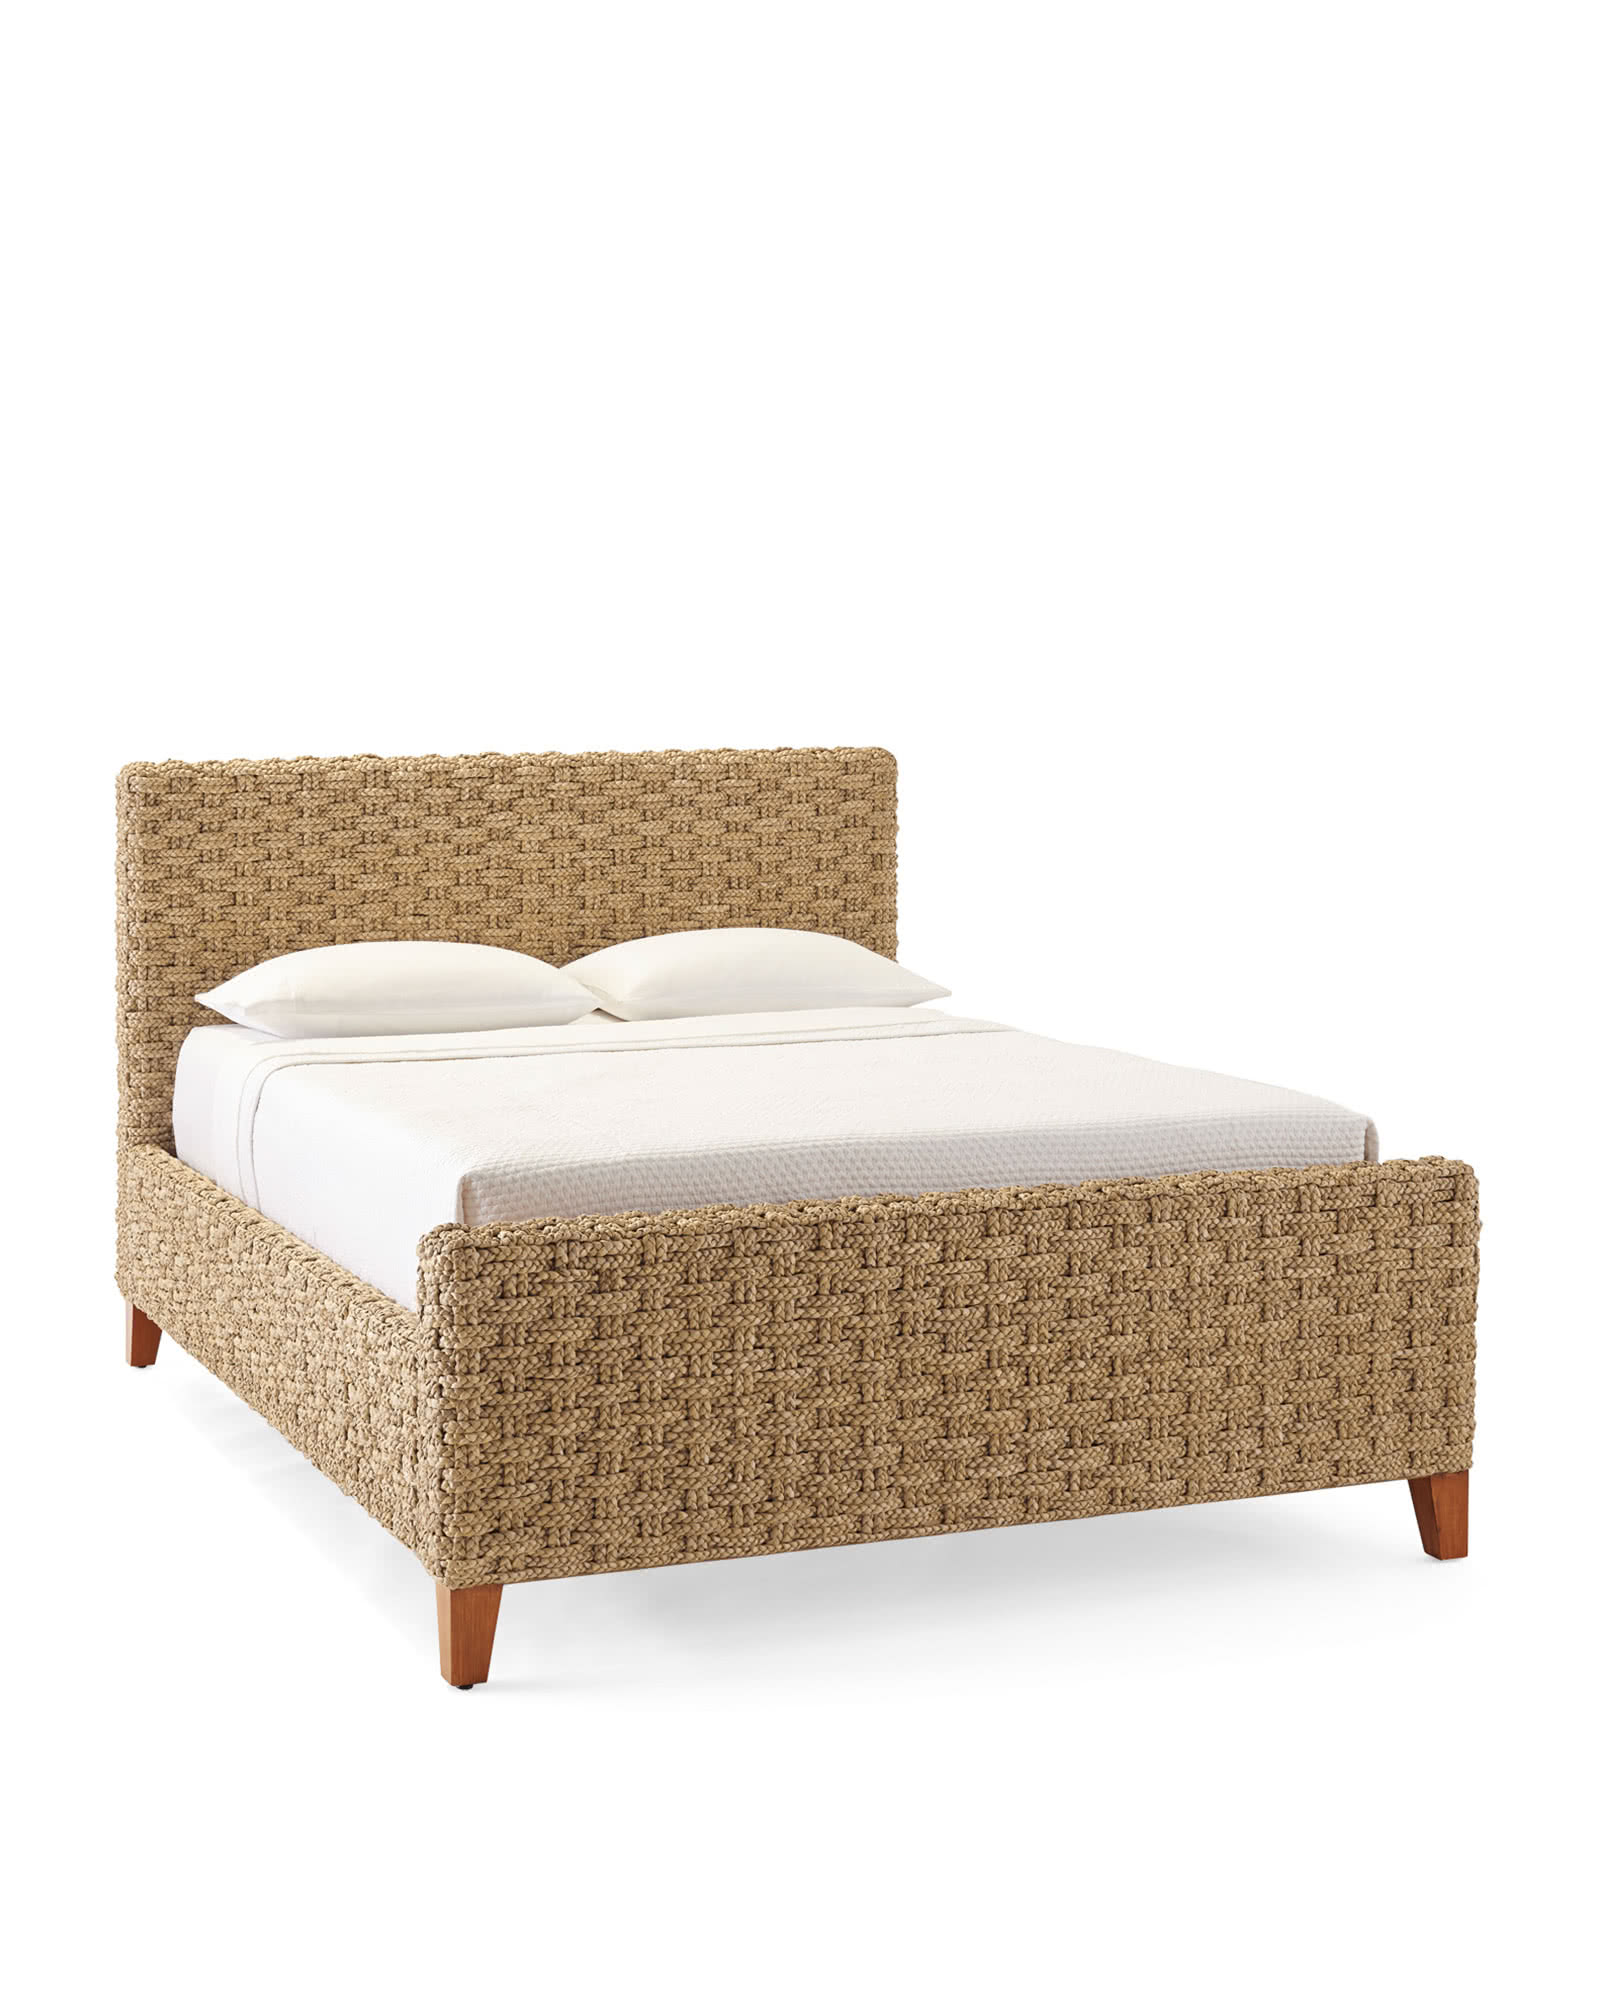 Costa Bed,